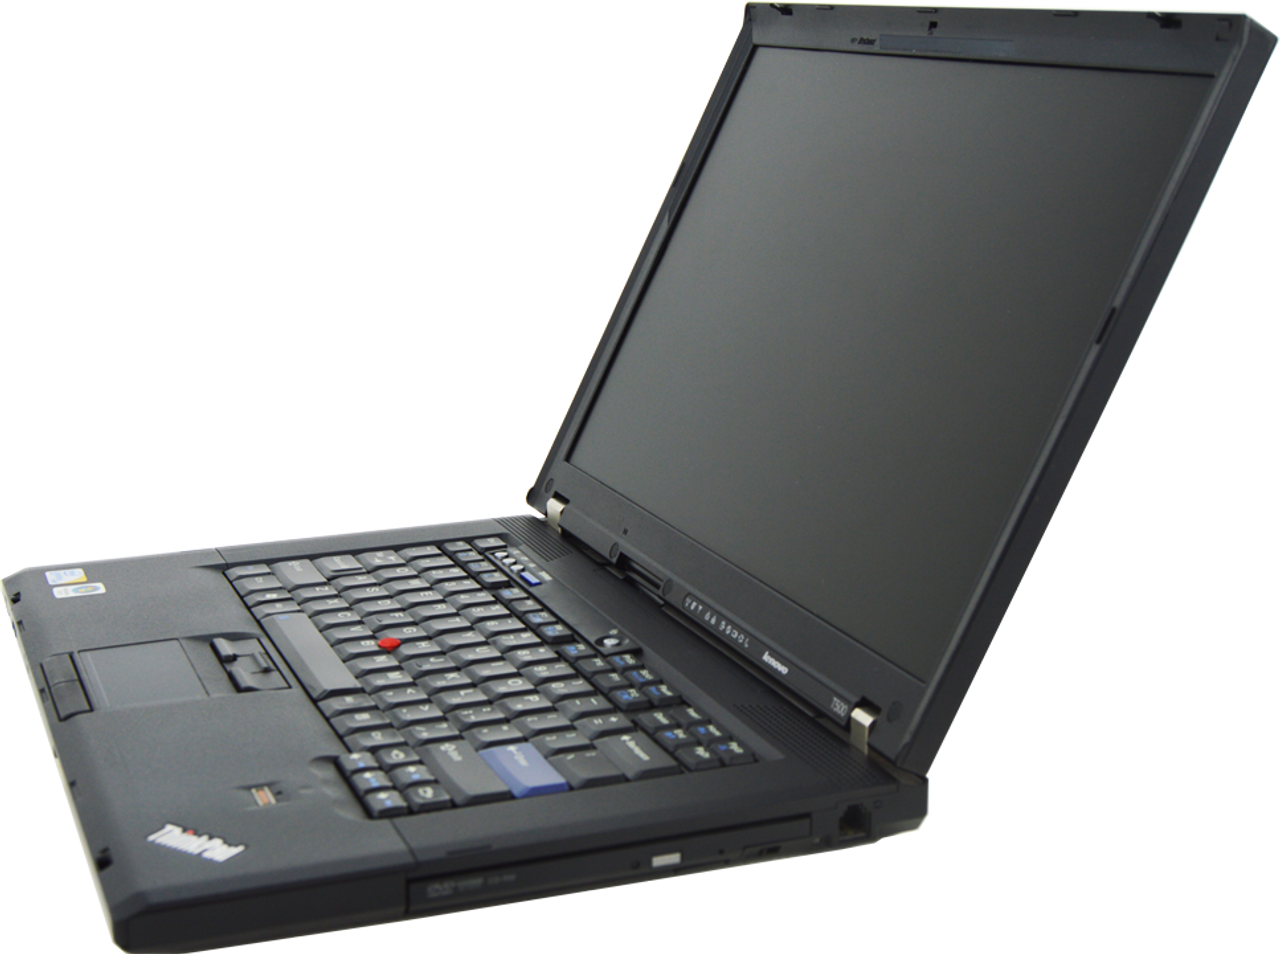 IBM Lenovo Thinkpad T500 Laptop Intel Core 2 Duo 2.53GHz, 4GB Ram, 250GB HDD, DVD-RW, Windows 7 Pro 64 Notebook